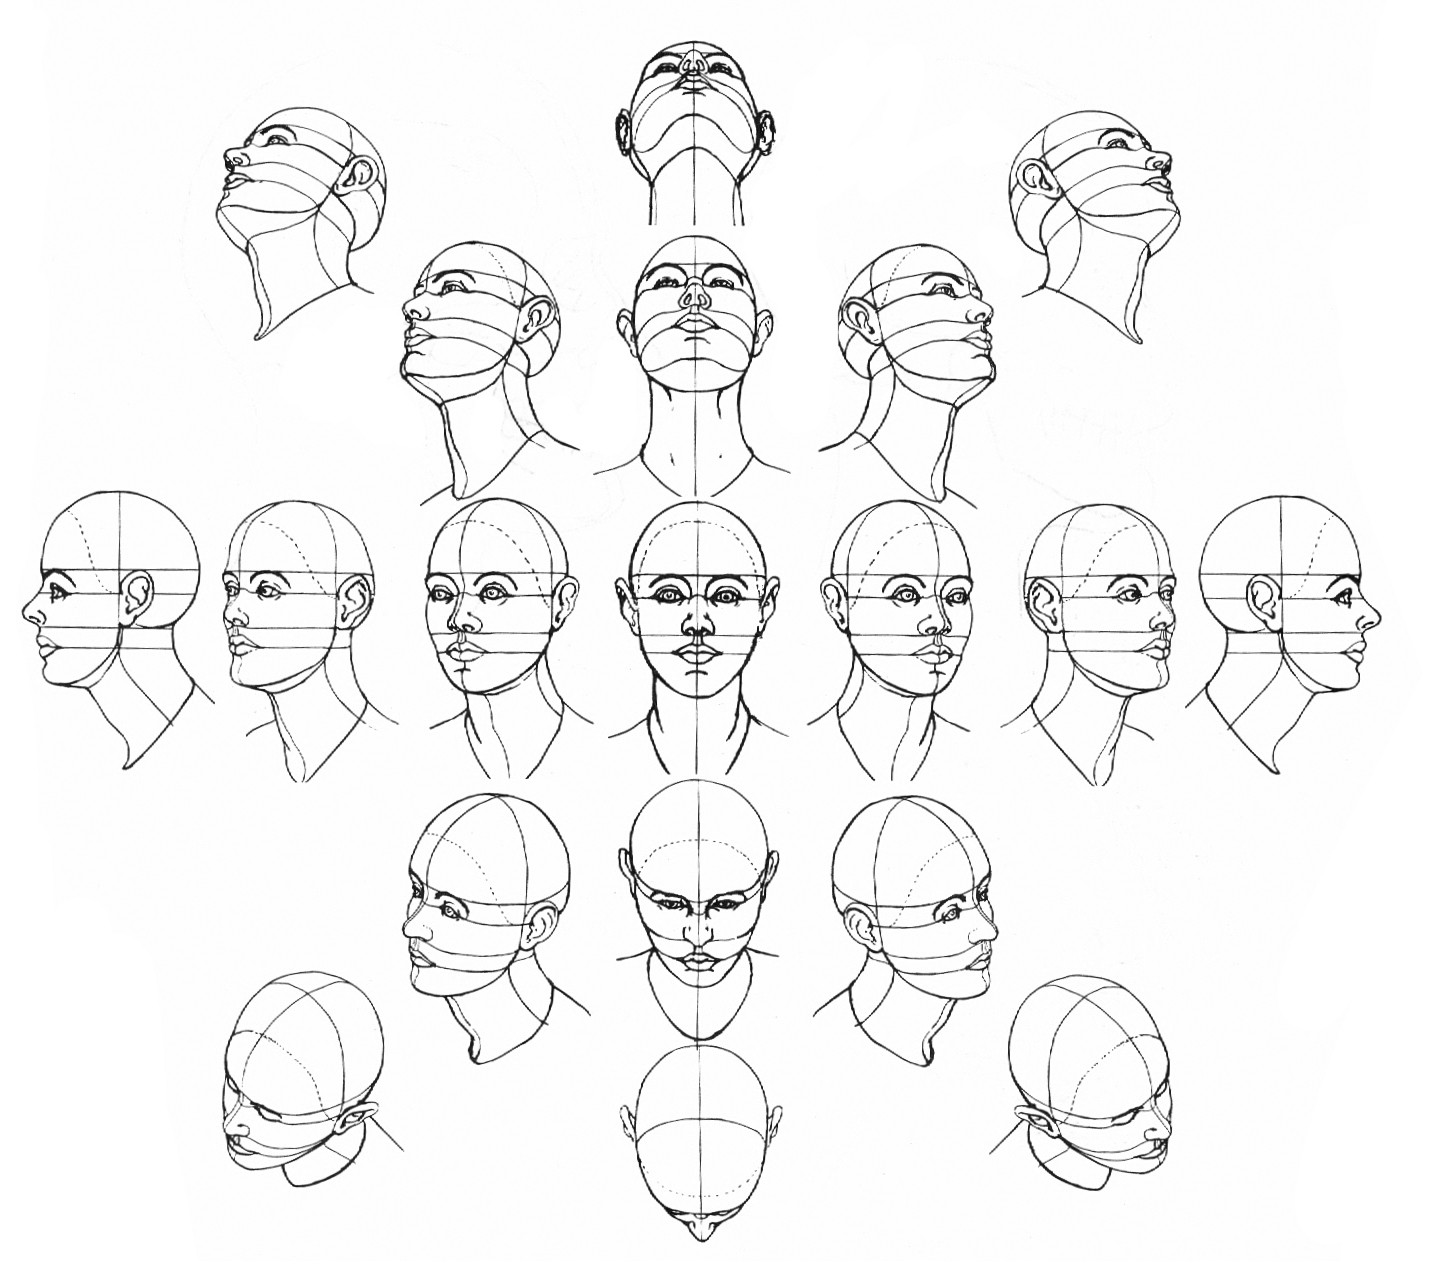 worksheet Angle Drawing jeff searle drawing the head from different angles you should study this and copy each angle shown but of course that isnt enough need to draw as many real peoples heads can